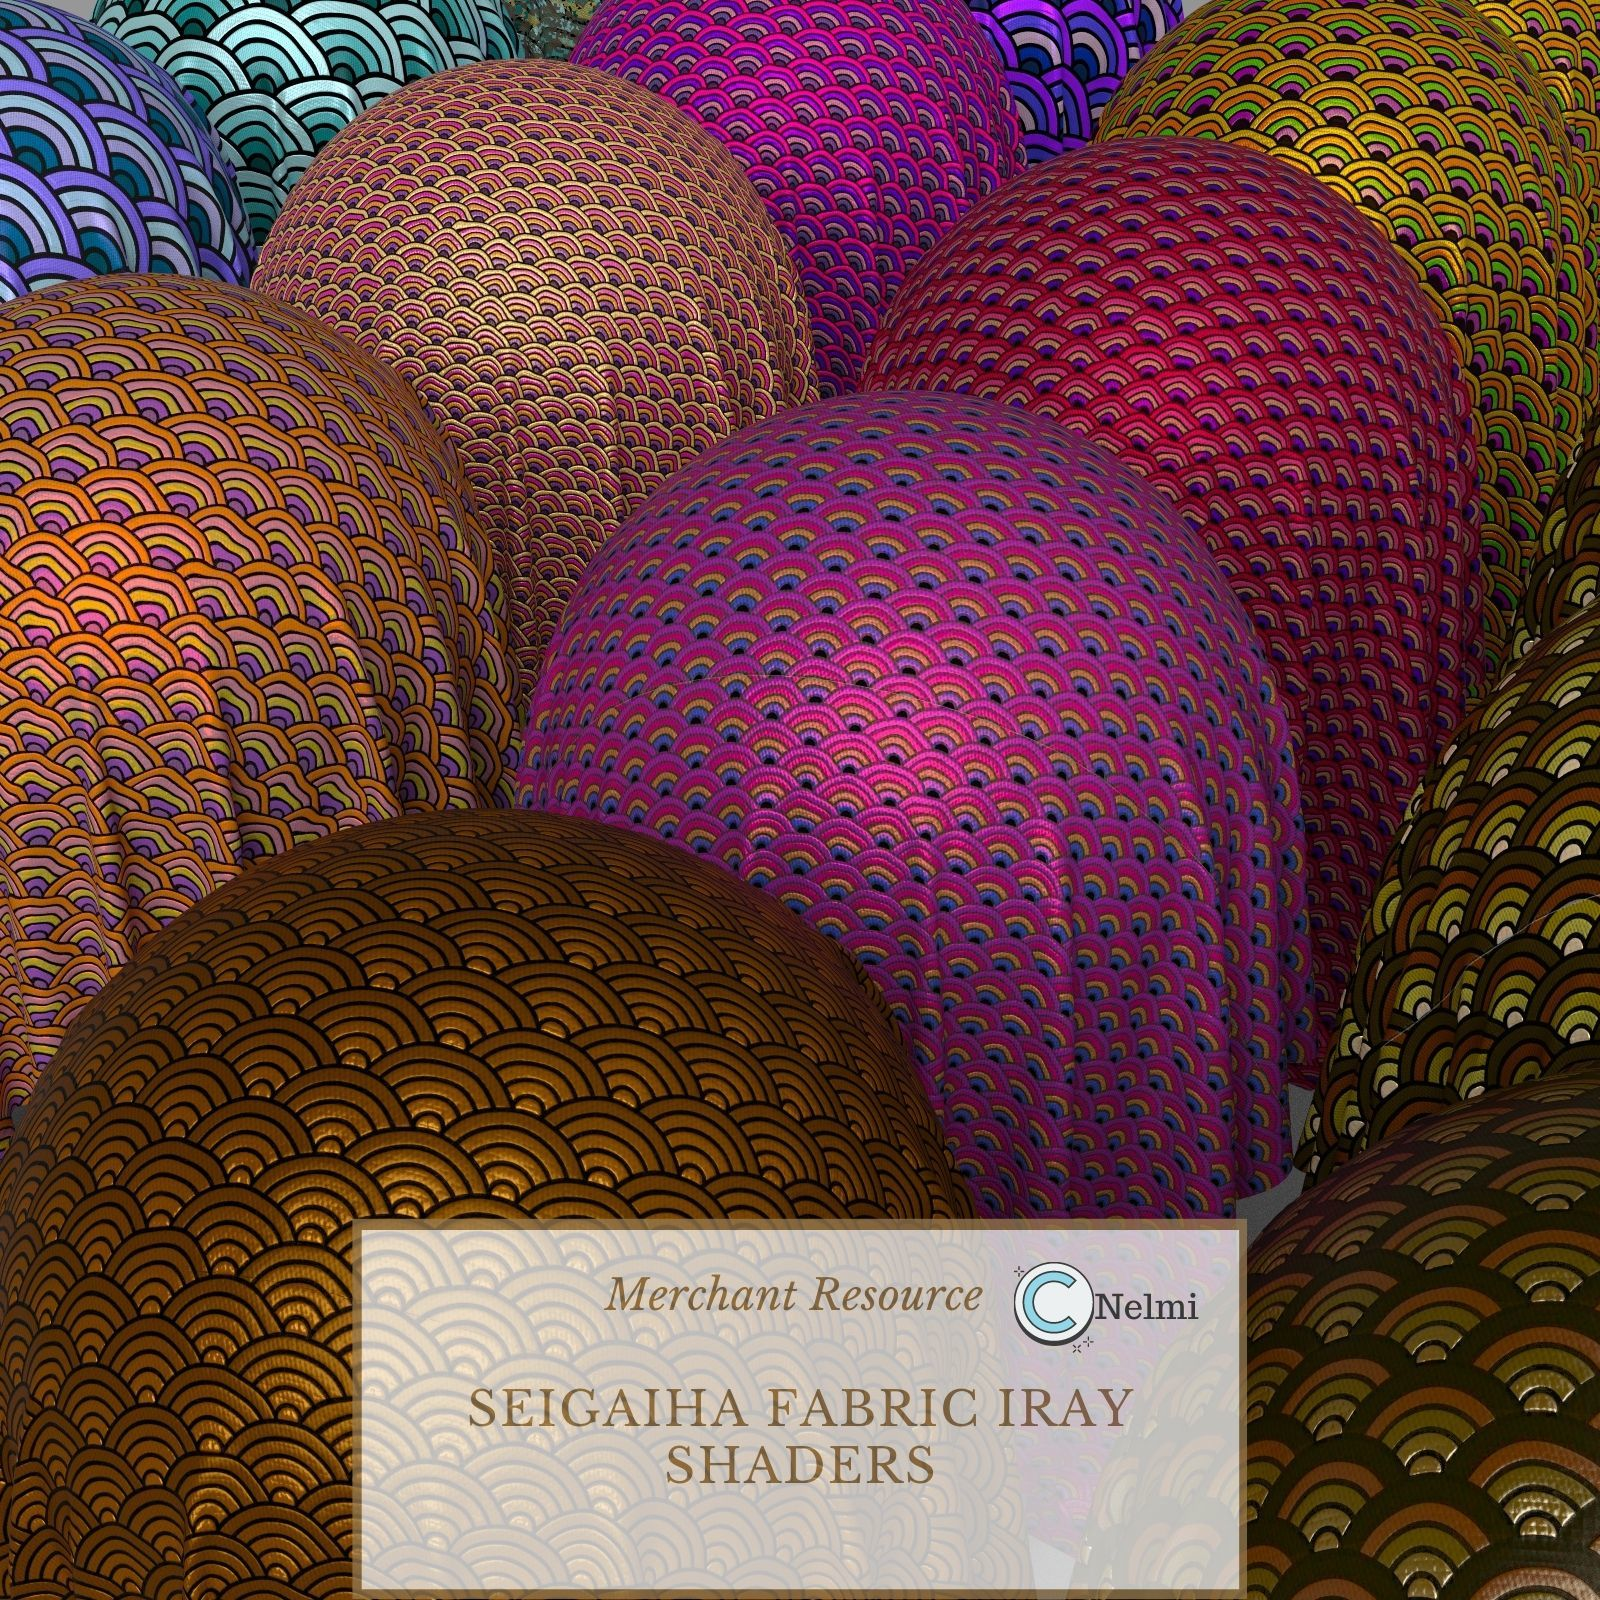 25 Seigaiha Fabric Iray Shaders - Merchant Resource